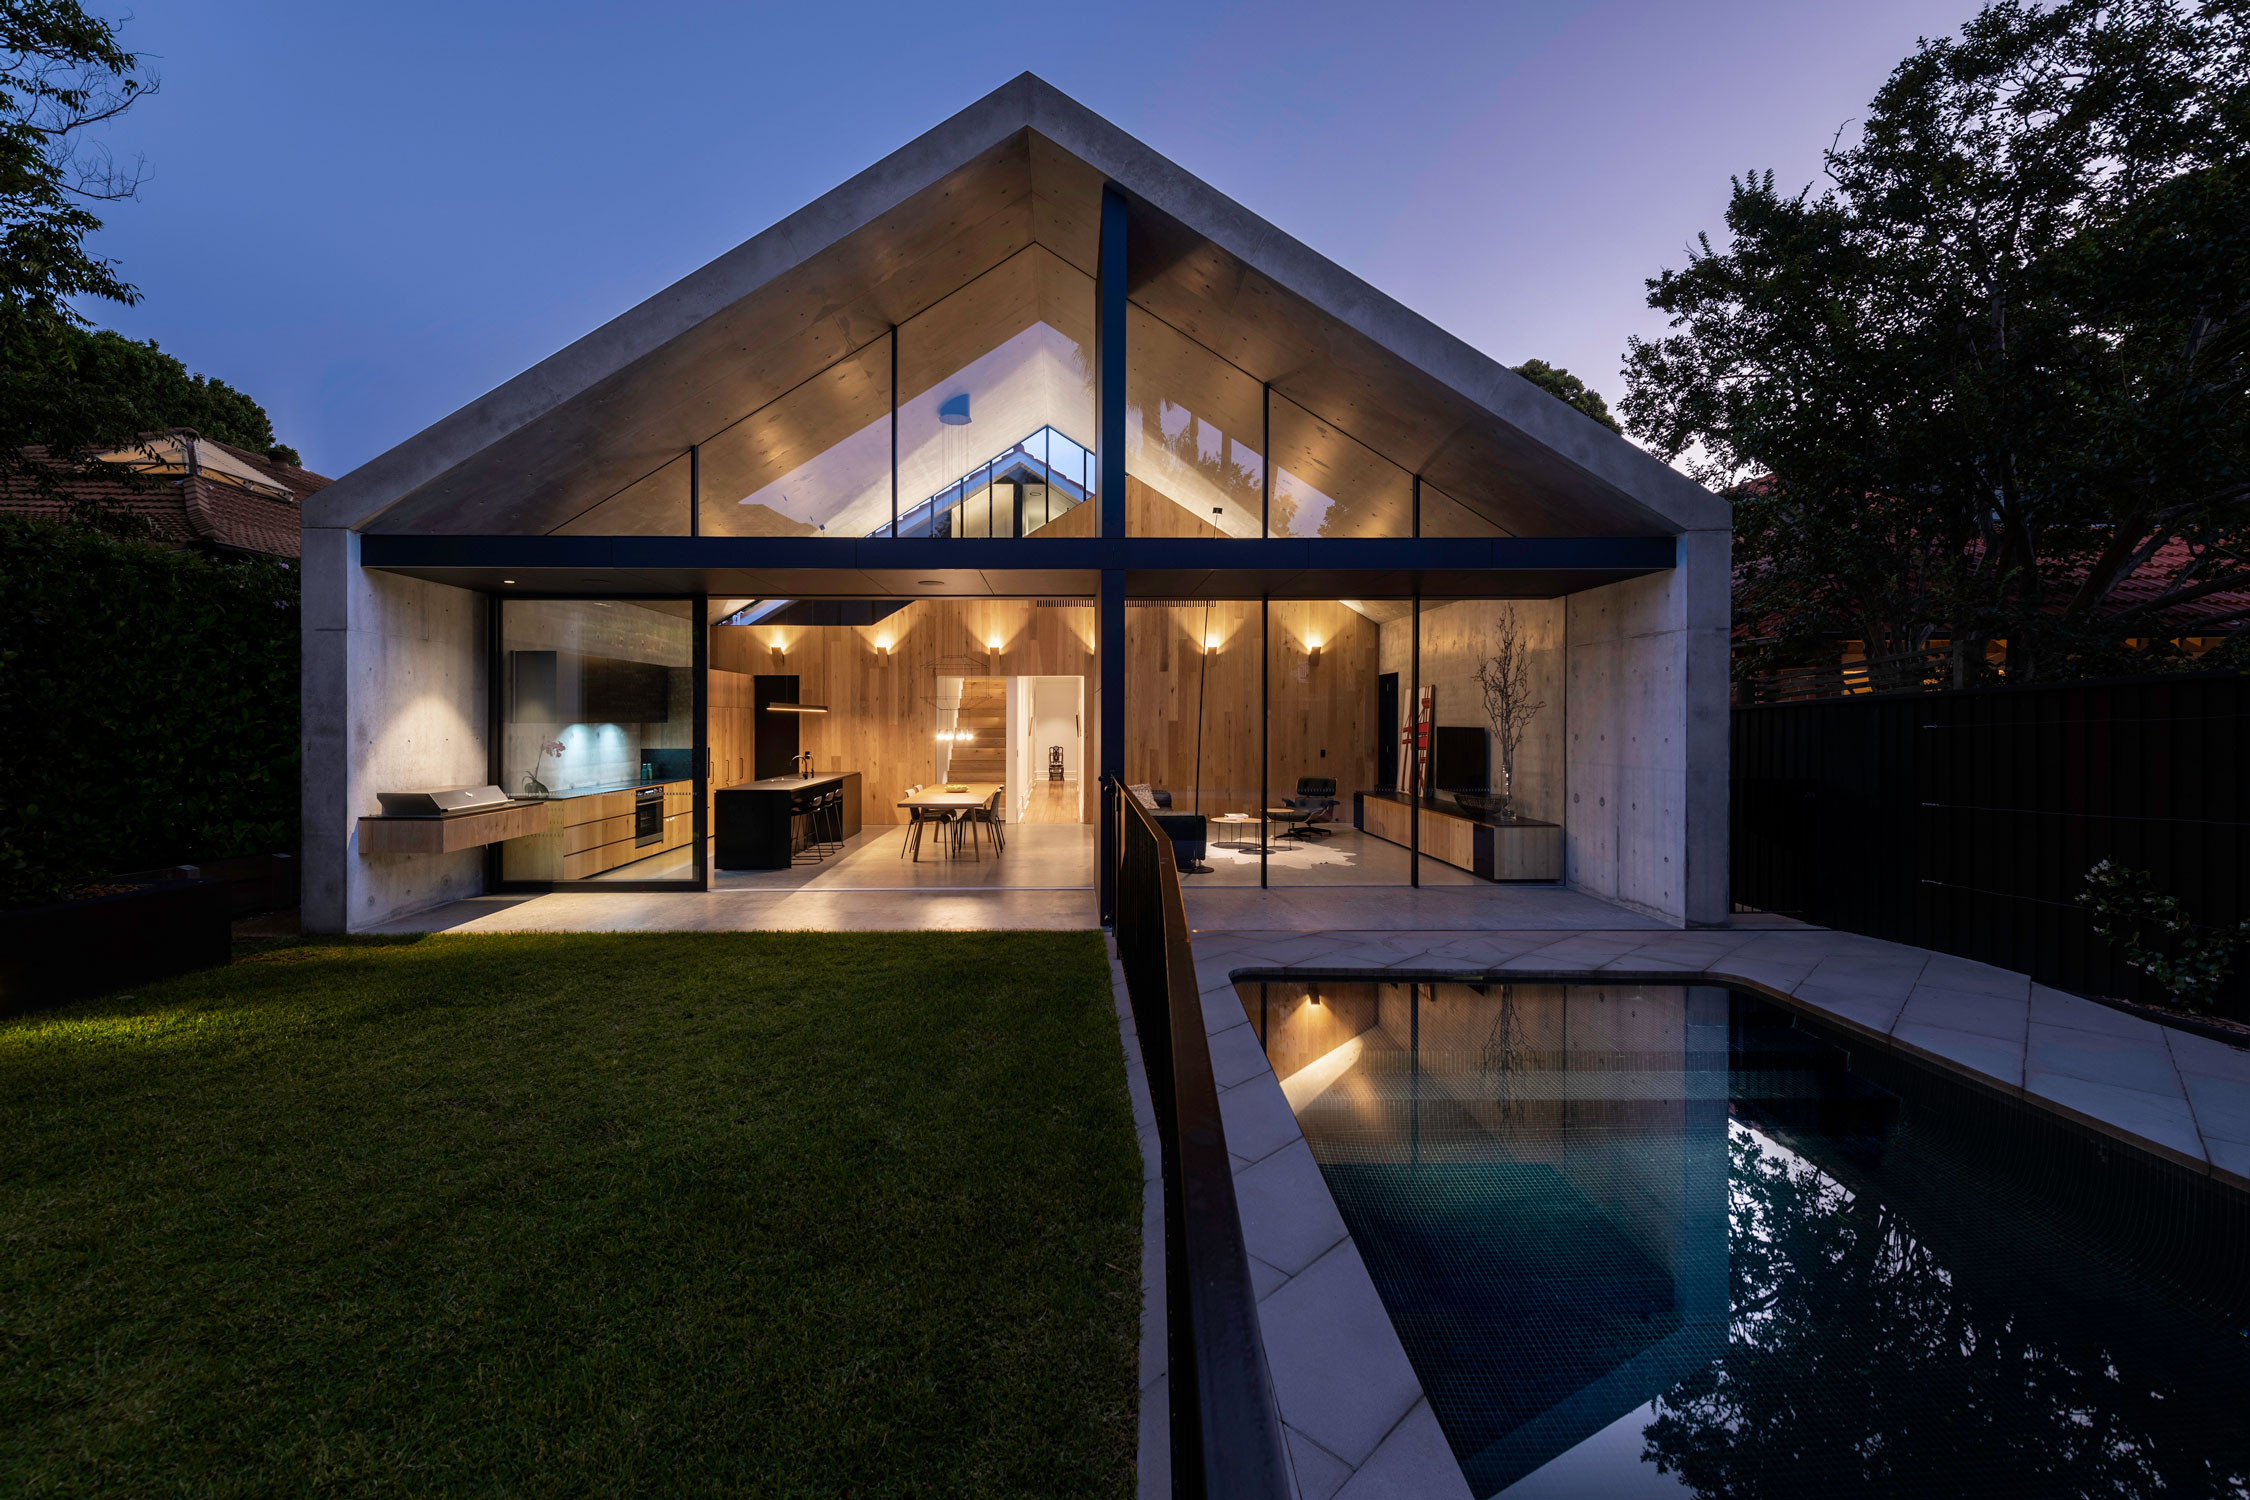 Mck Architecture And Interiors Have Successfully Taken The Traditional Residential Vernacular